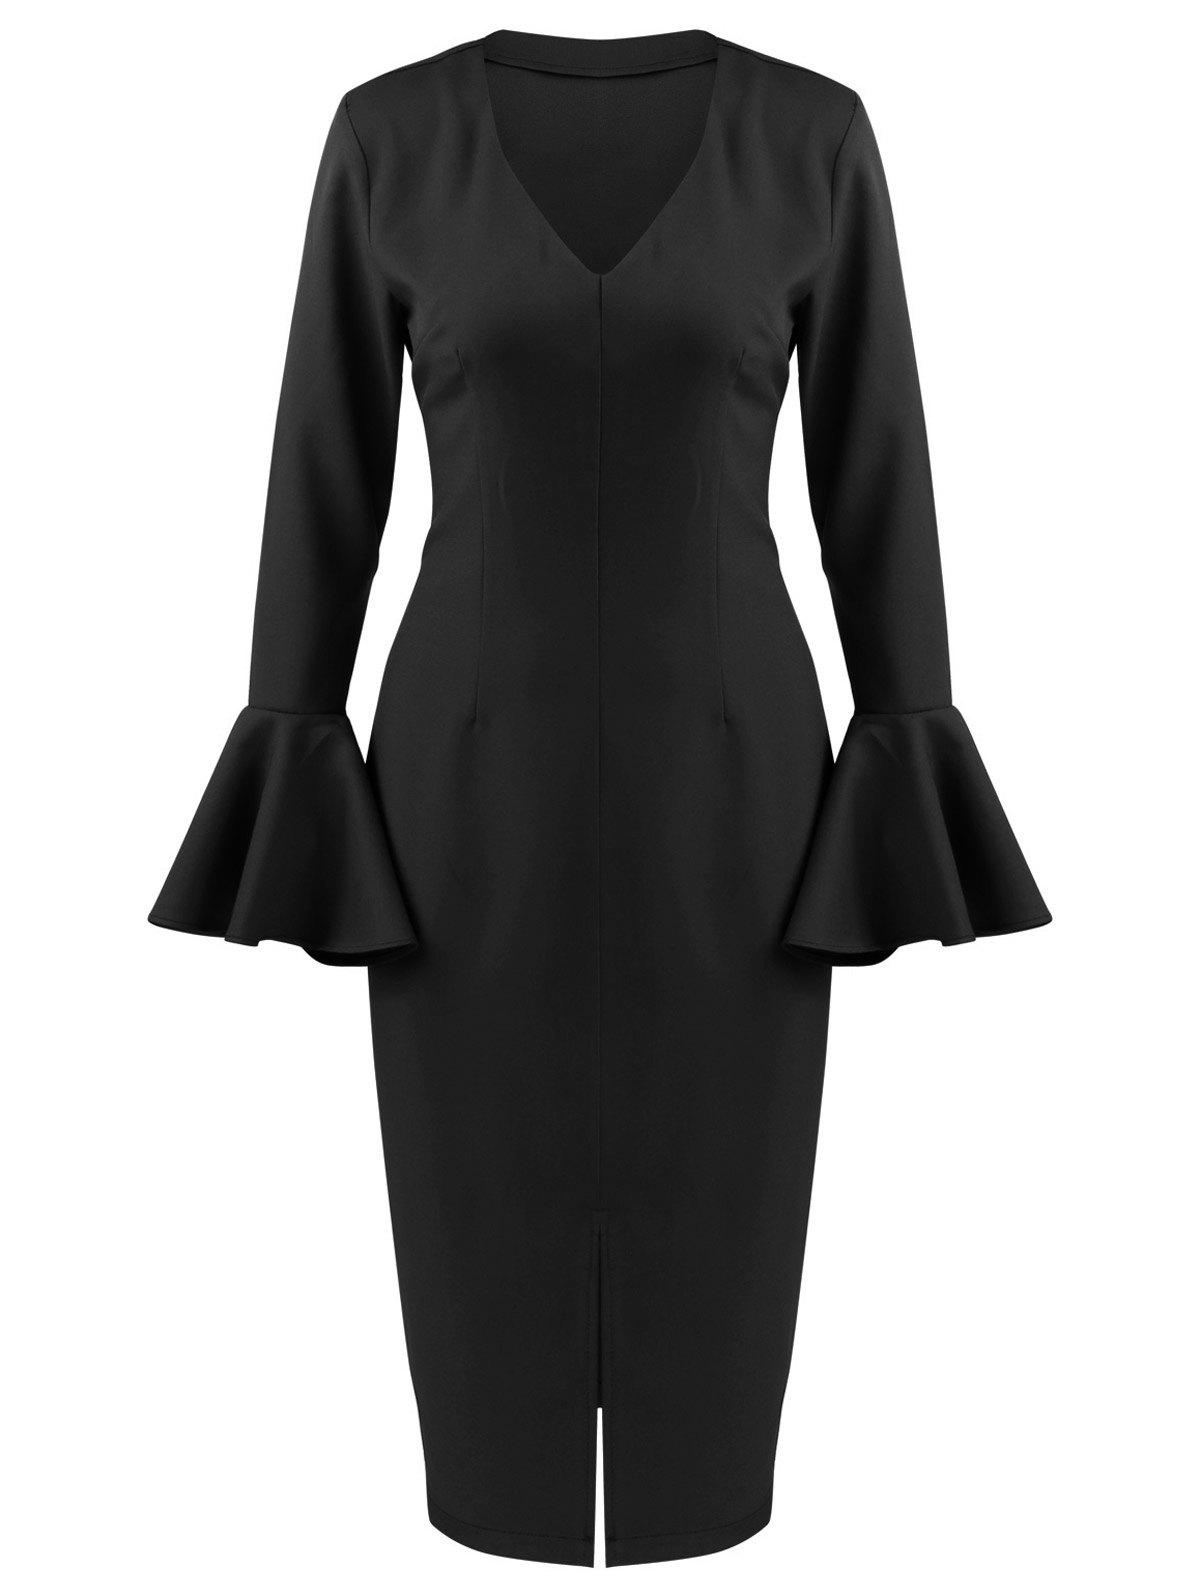 Flare Long Sleeve Tea Length Bodycon Formal Dress - BLACK XL